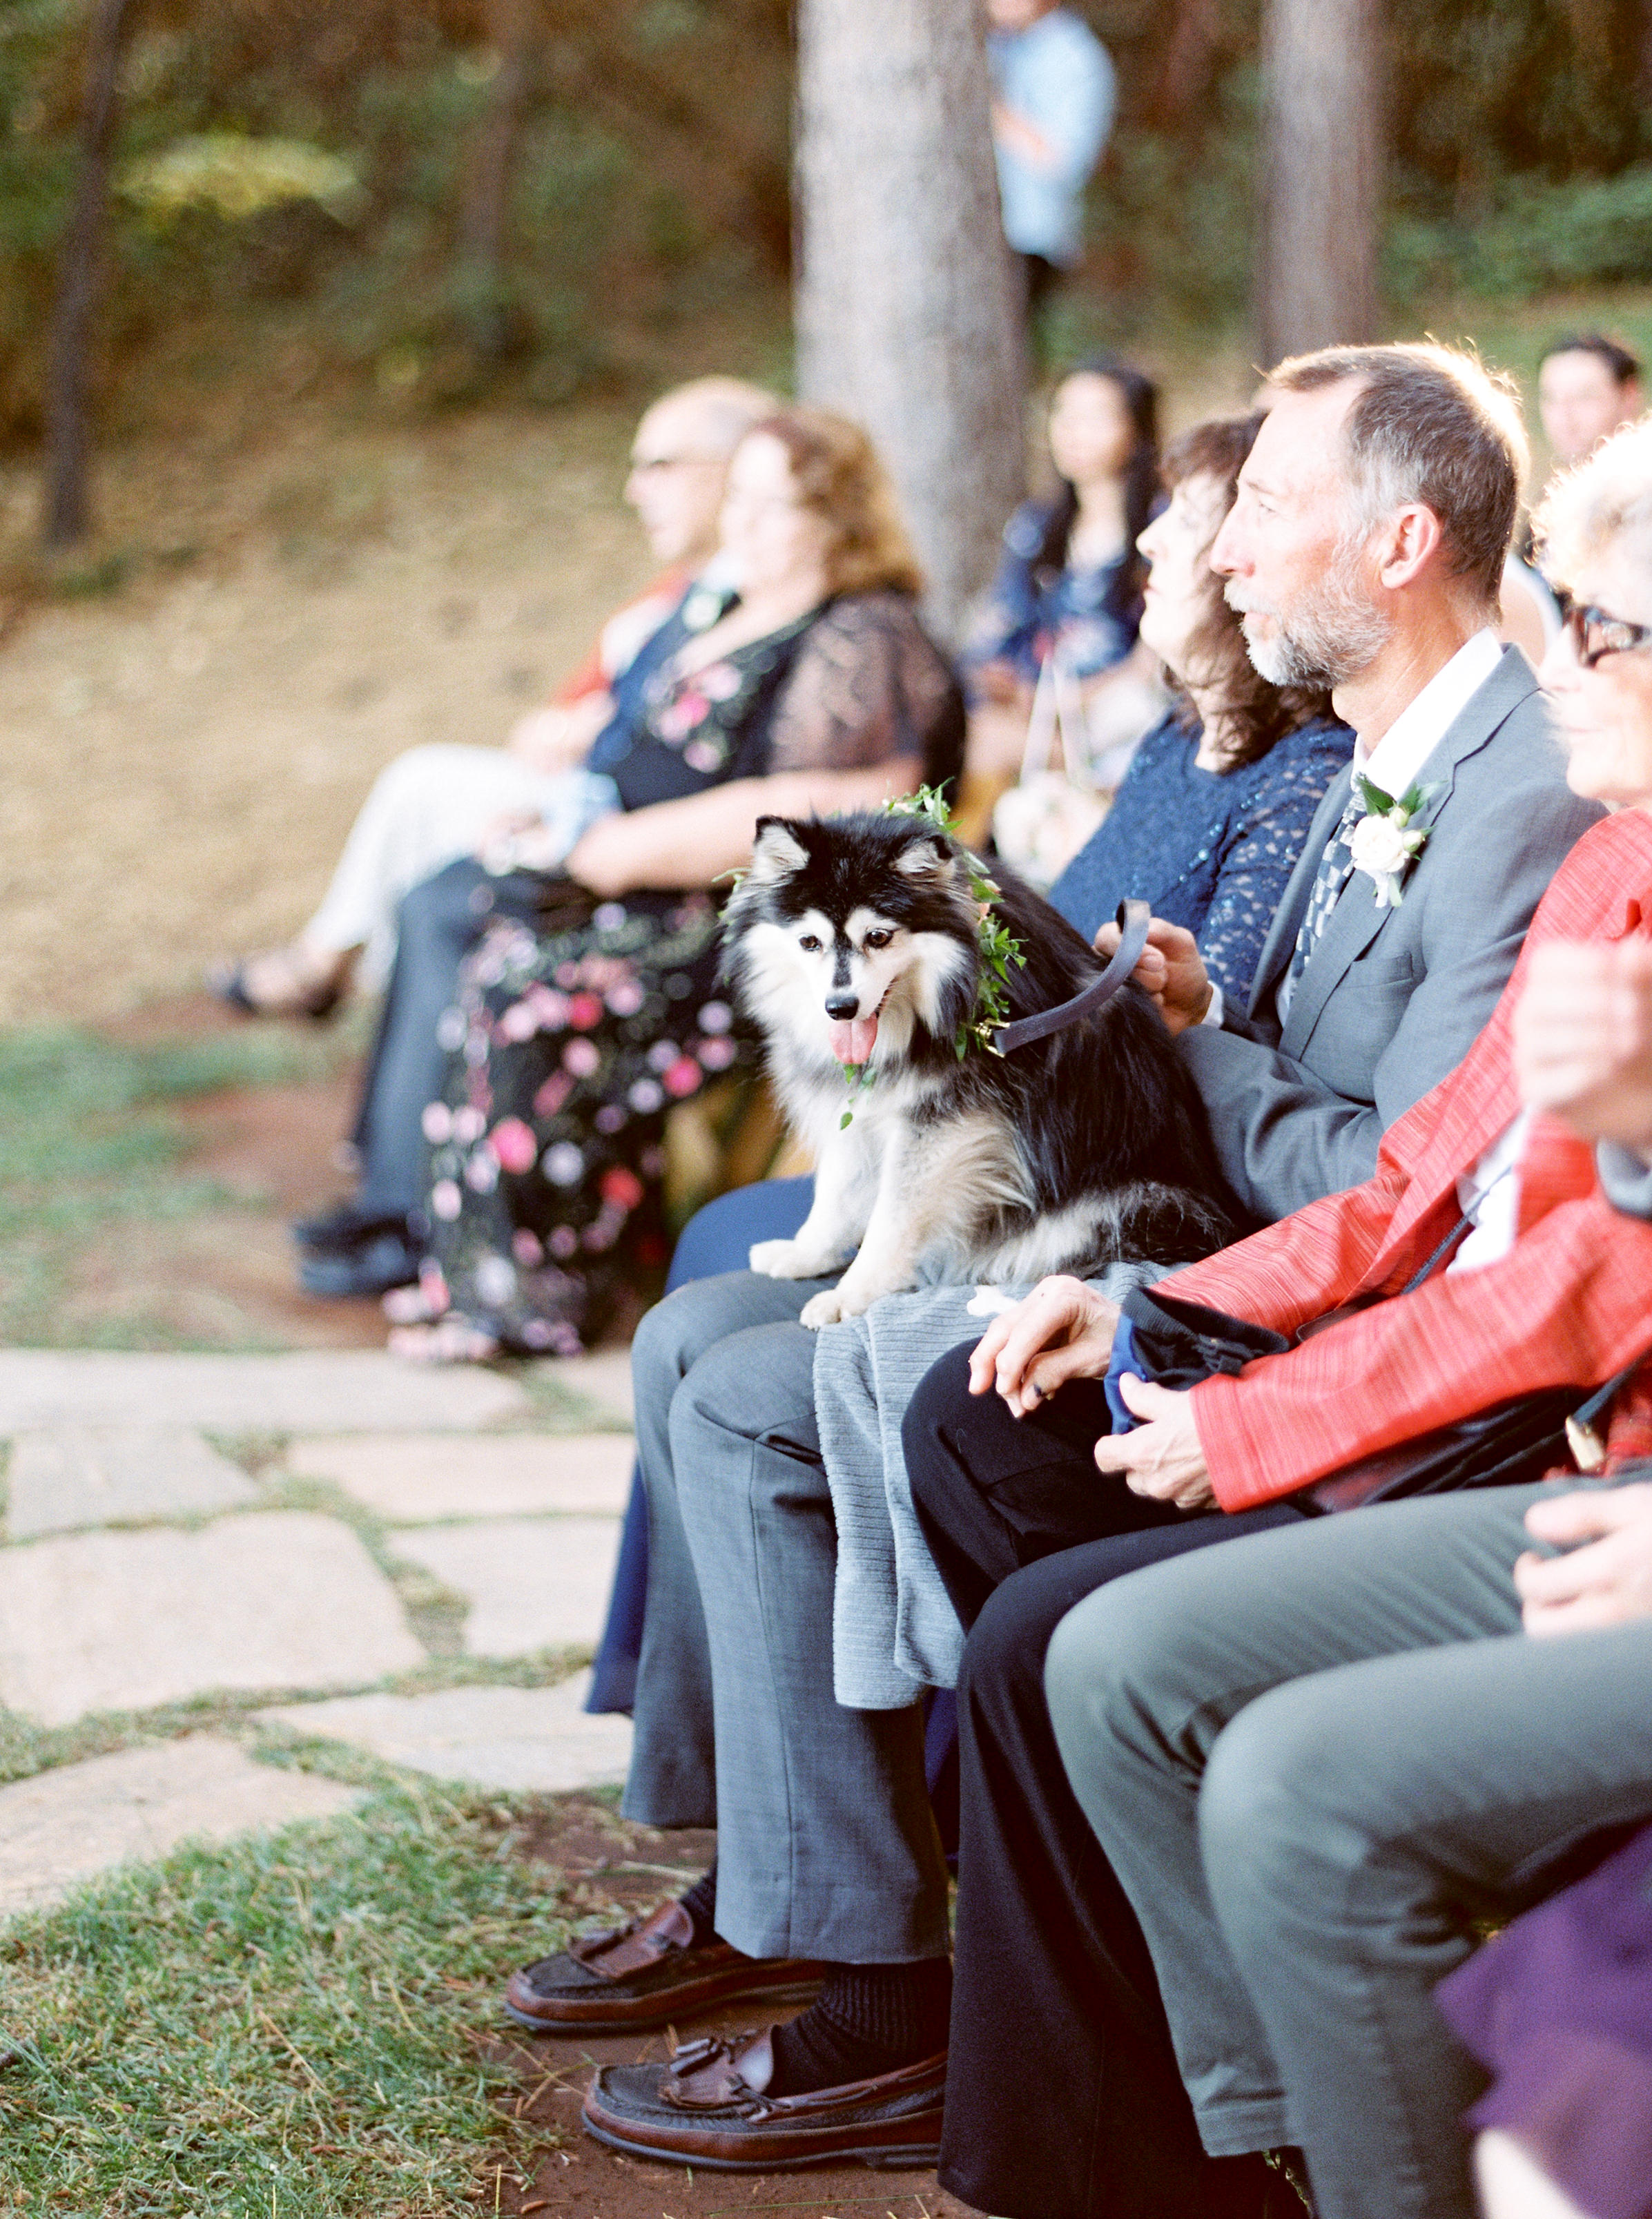 Forest-house-lodge-wedding-foresthill-california-1.jpg